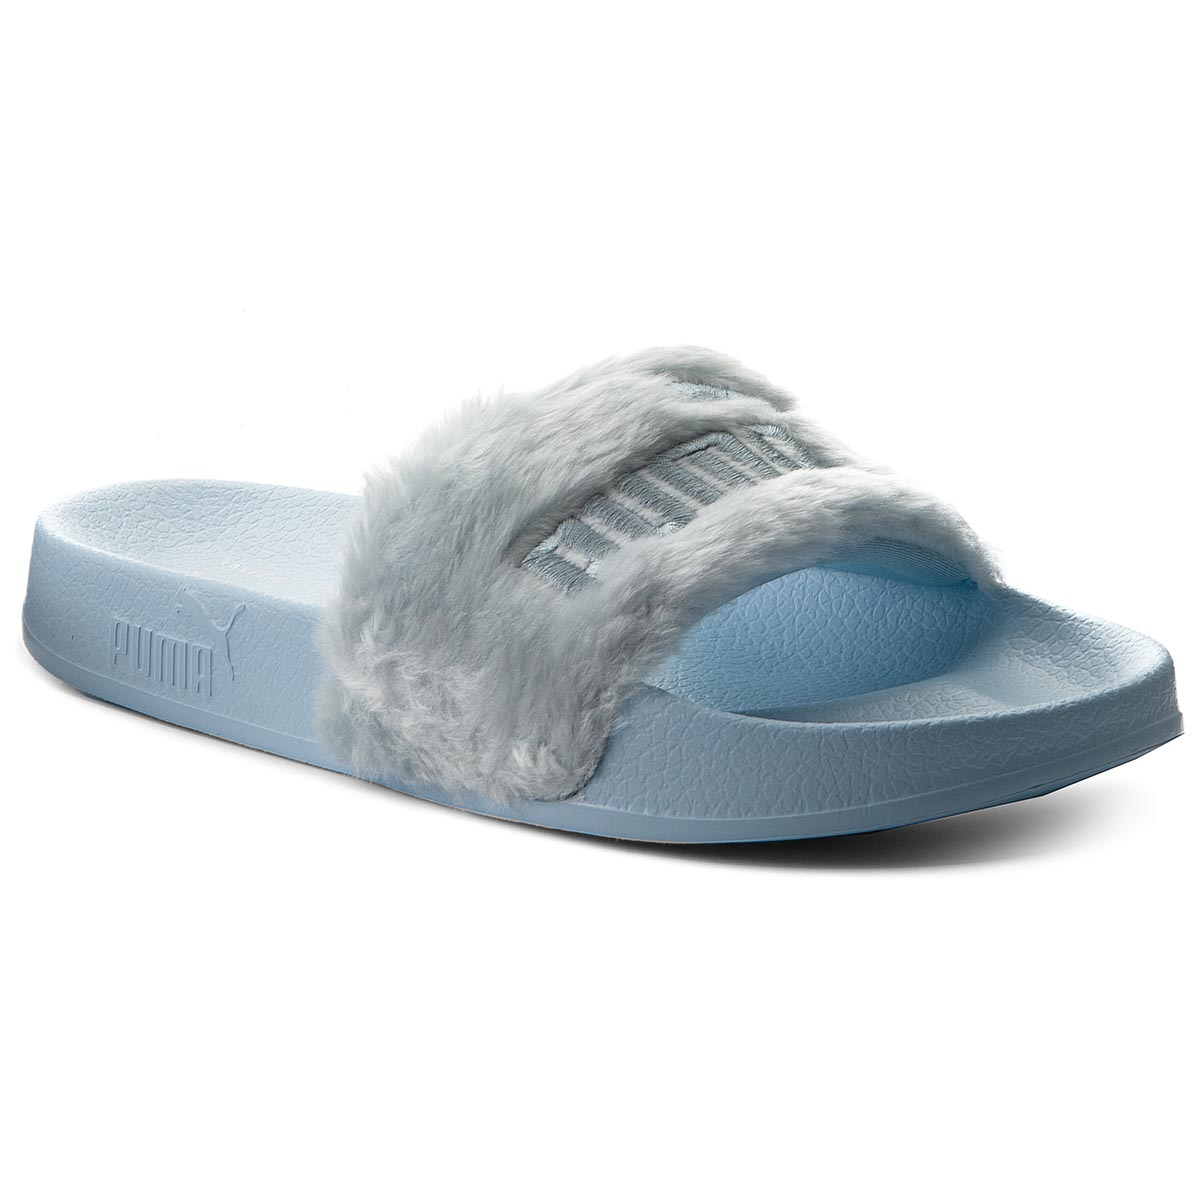 Klapki PUMA - Fur Slide 365772 03 Cool Blue/Puma Silver